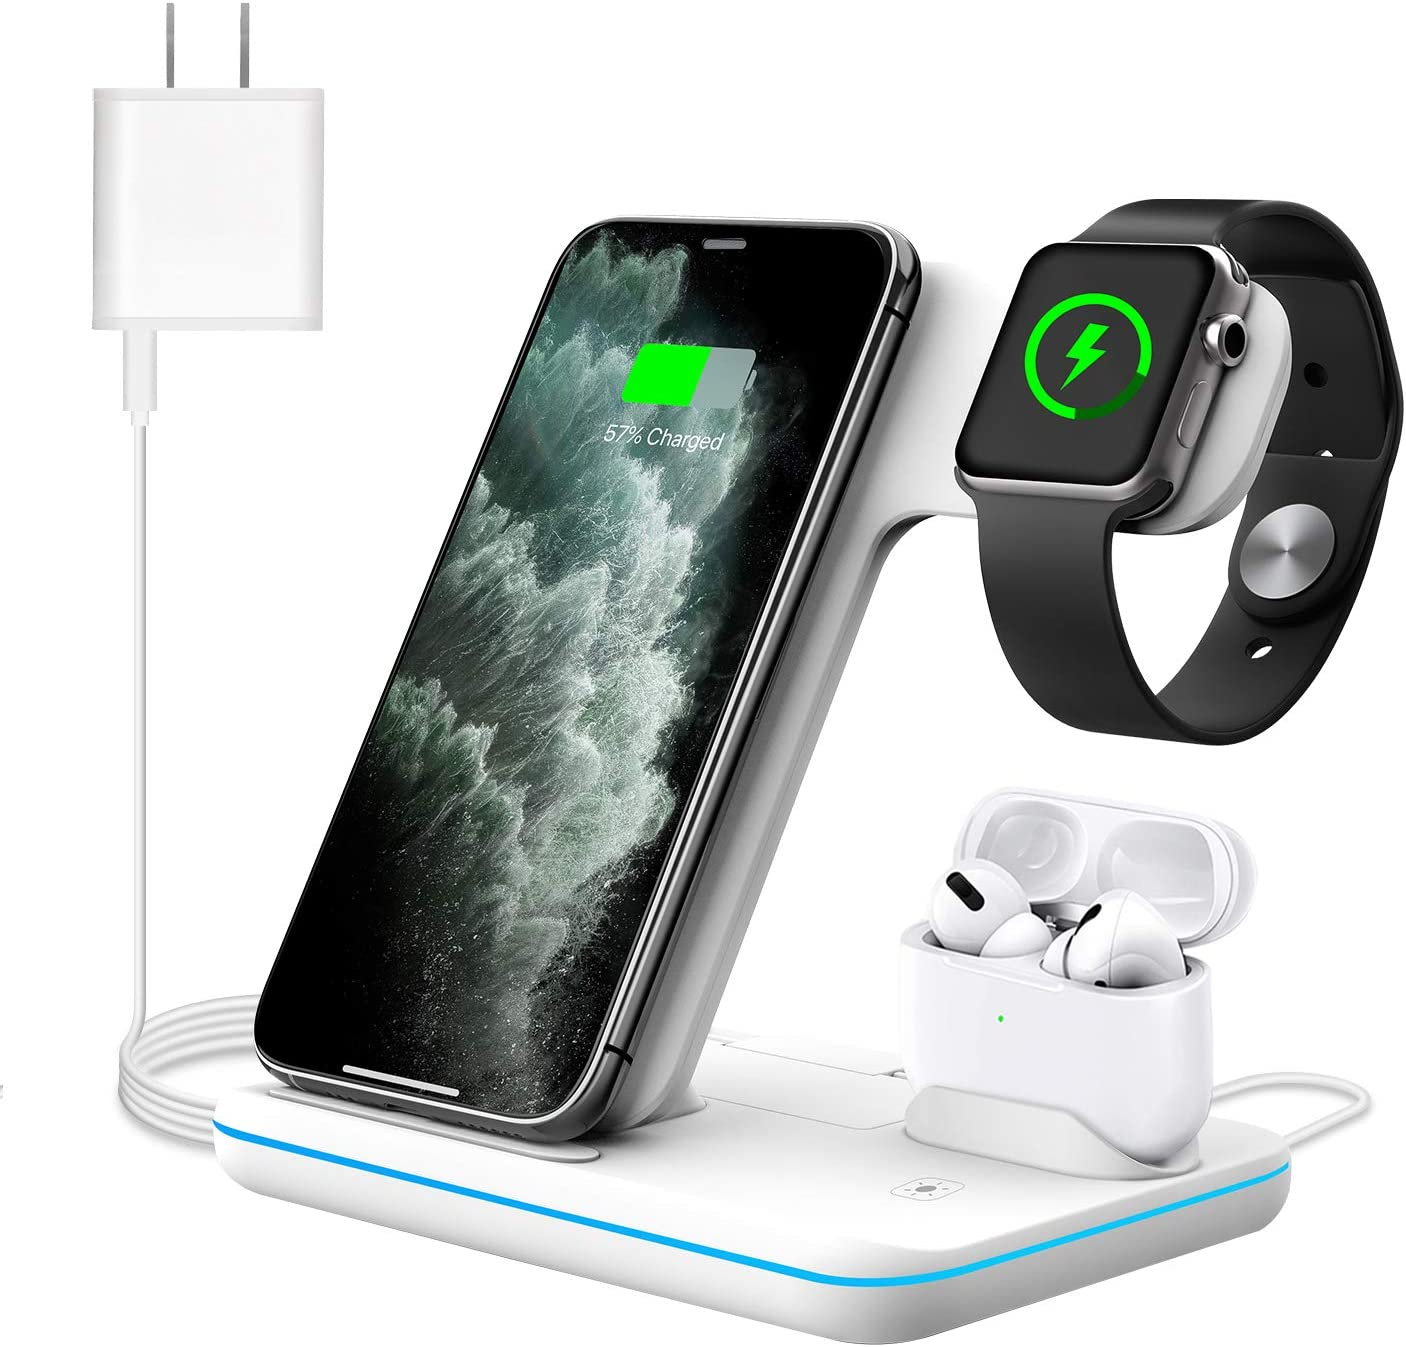 WAITIEE Wireless Charger,3 in 1 Qi-Certified 15W Fast Charging Station for Apple iWatch Series 5/4/3/2/1,AirPods,Compatible with iPhone 11 Series/XS MAX/XR/XS/X/8/8 Plus/Samsung (White)